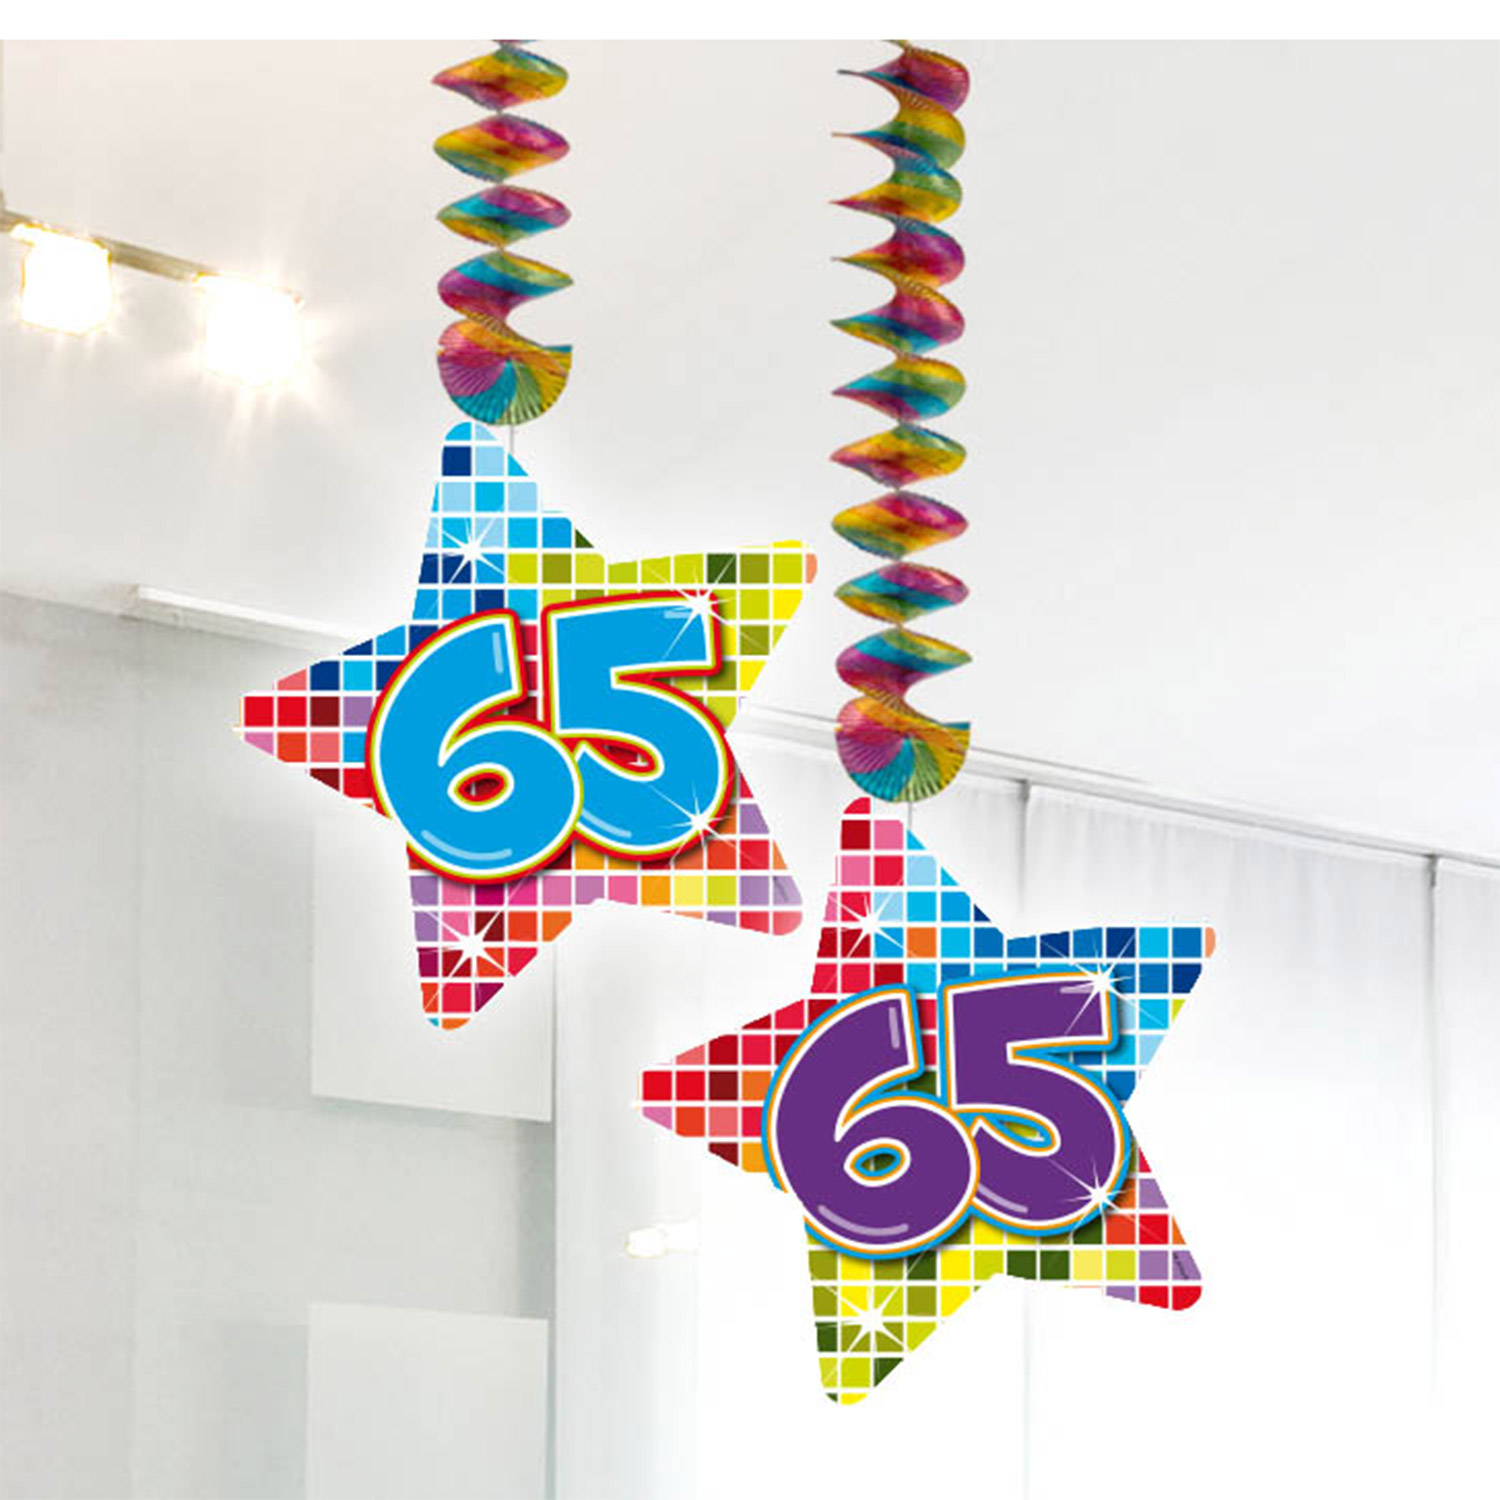 Hangdecoratie Blocks 65